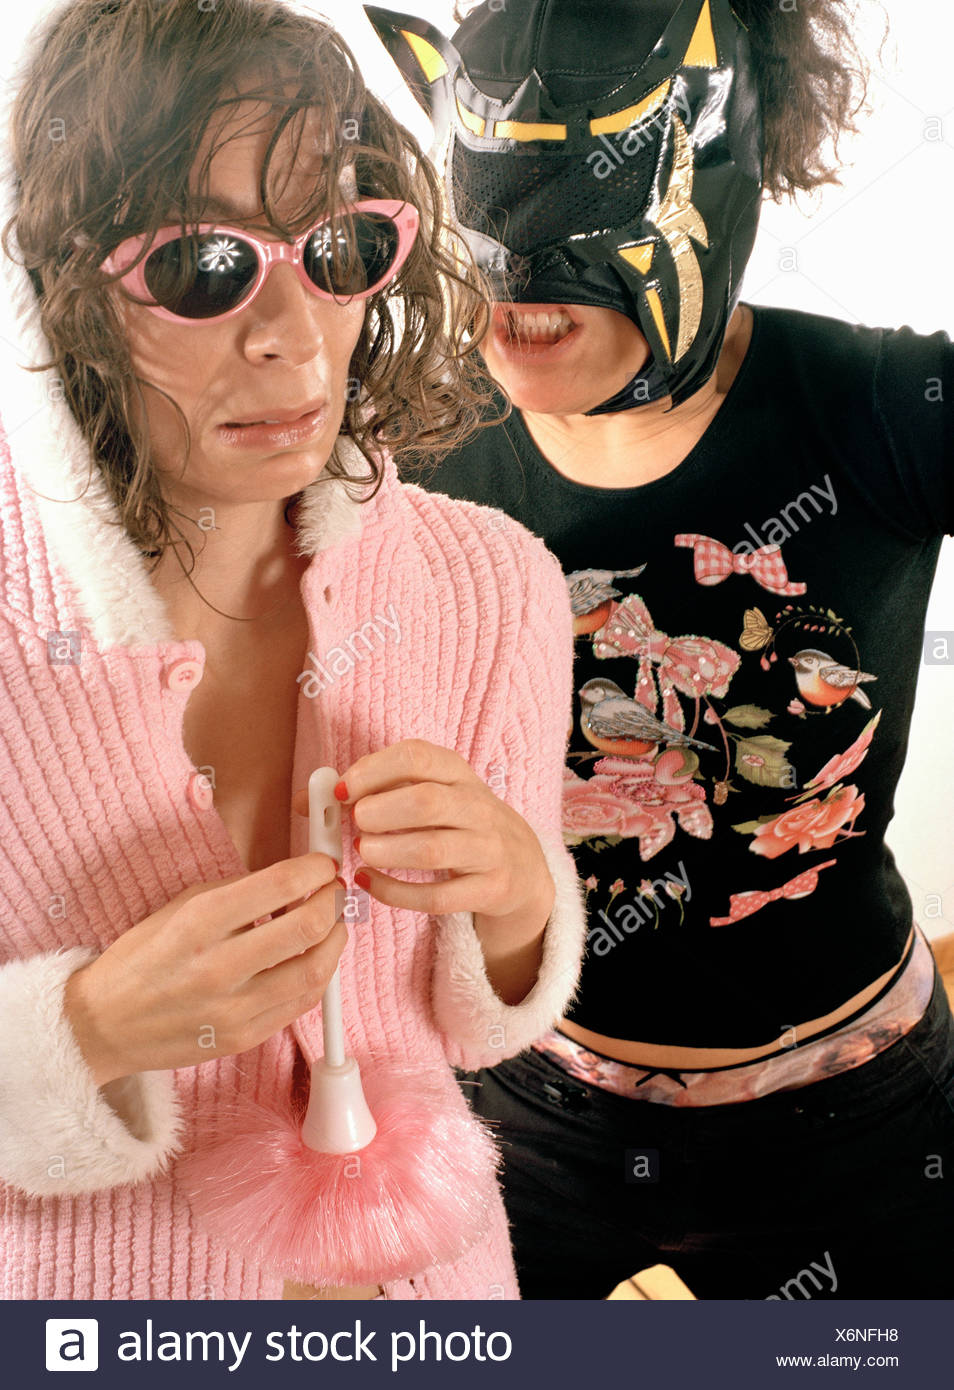 A woman wearing a wrestling mask growling at a woman in a nightgown - Stock Image